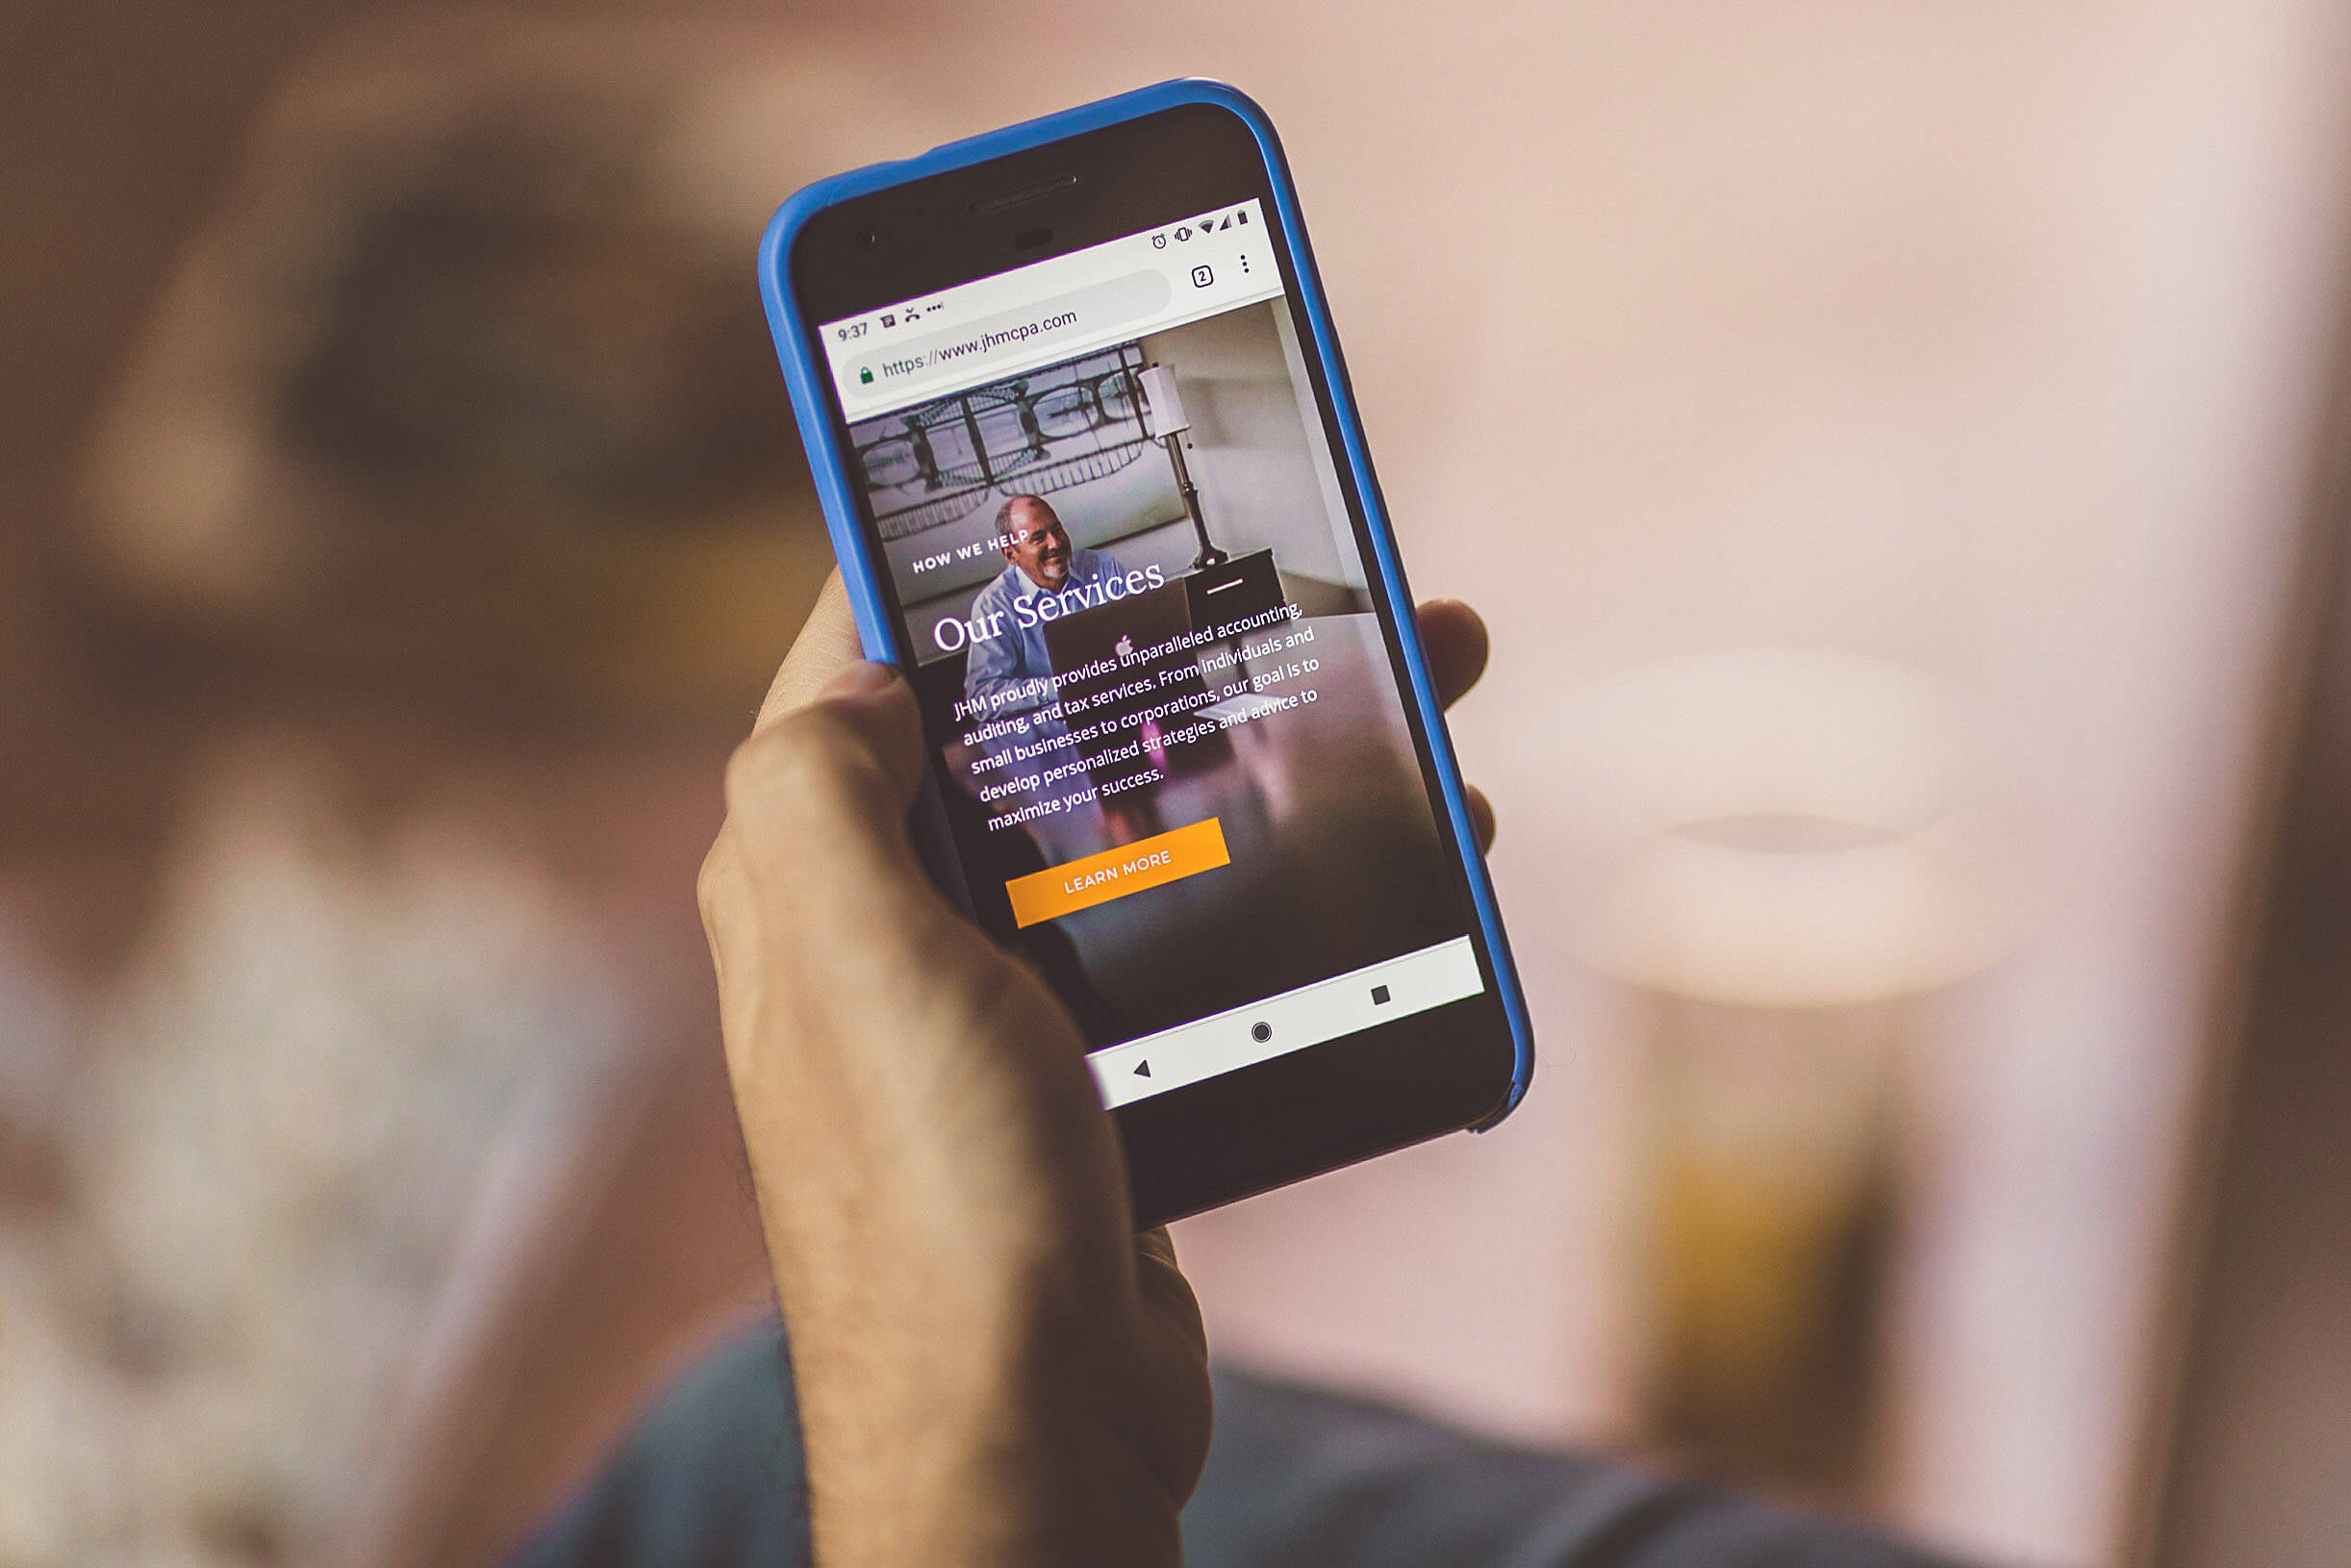 Over the shoulder shot of a mobile phone displaying the JHM site developed for Counsel Creative.